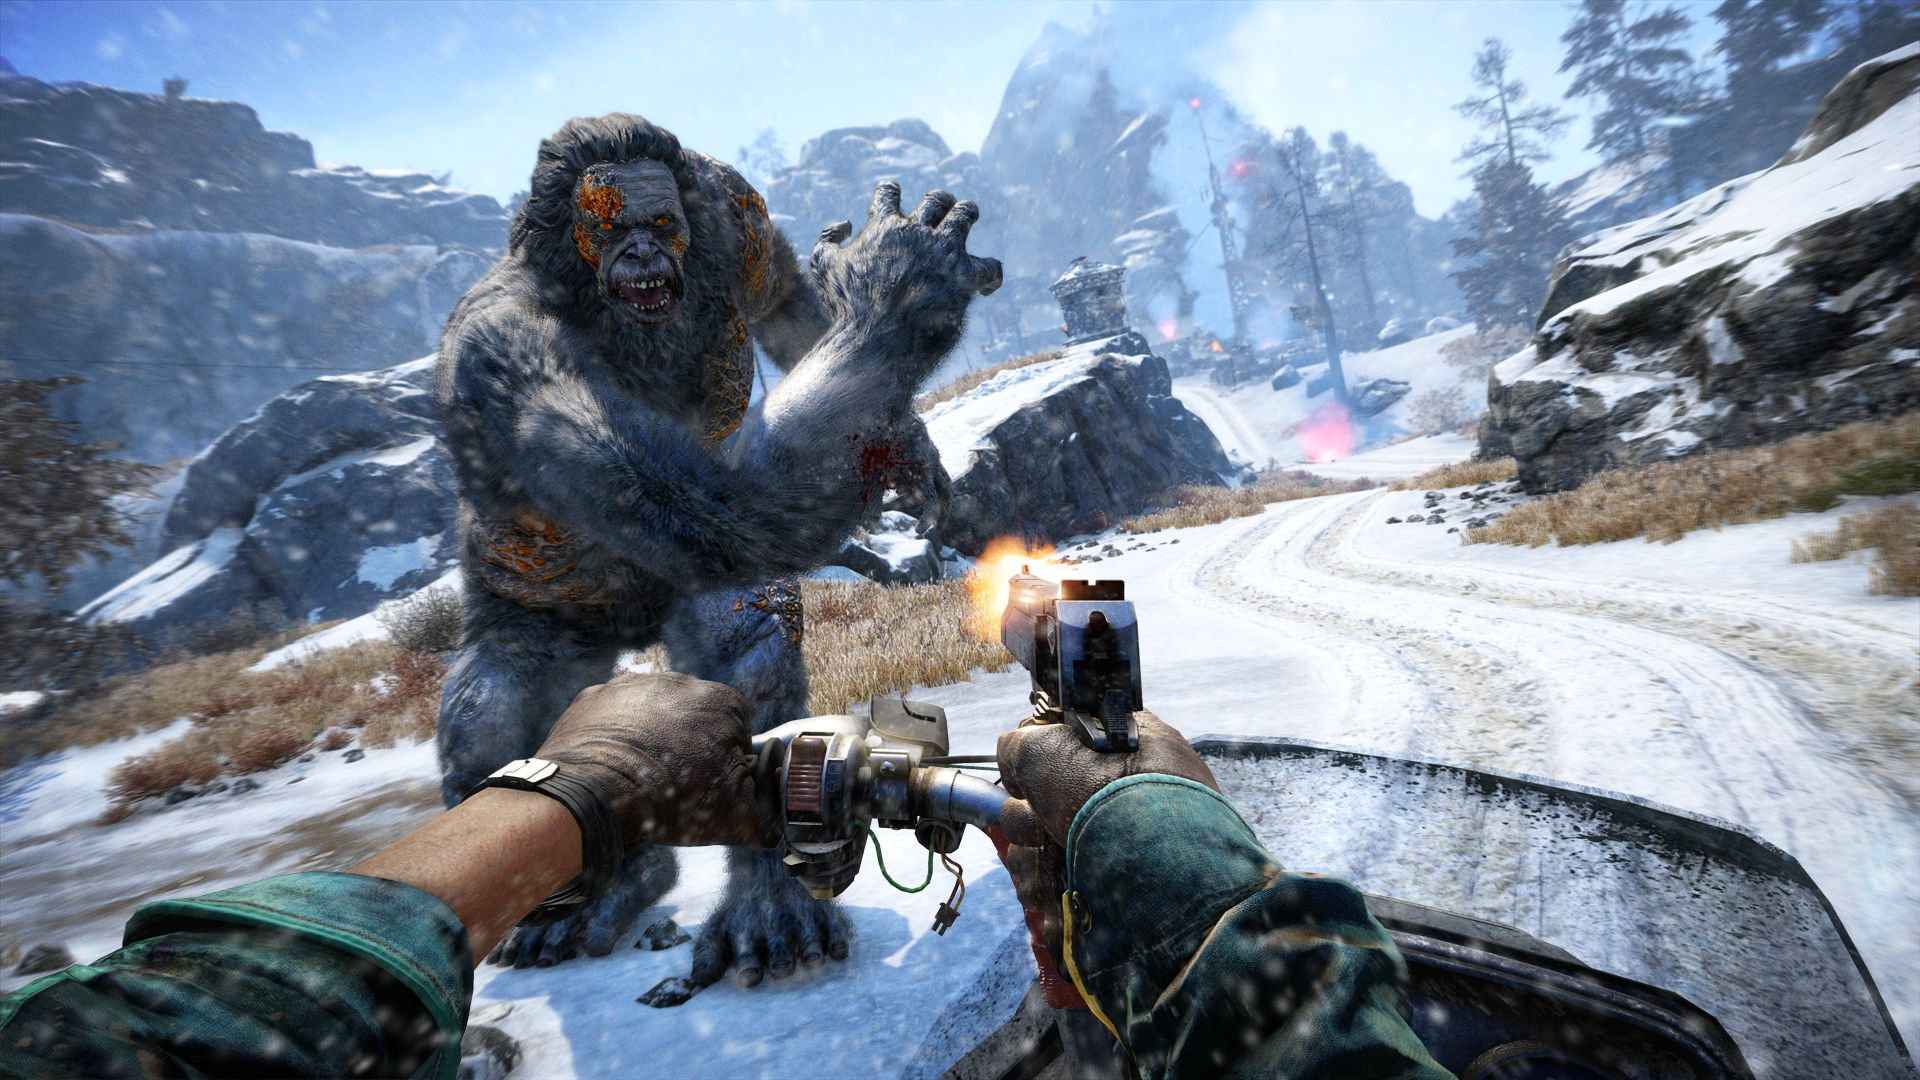 Far Cry 4 Valley of the Yetis Review: Monsters Wander Here ...